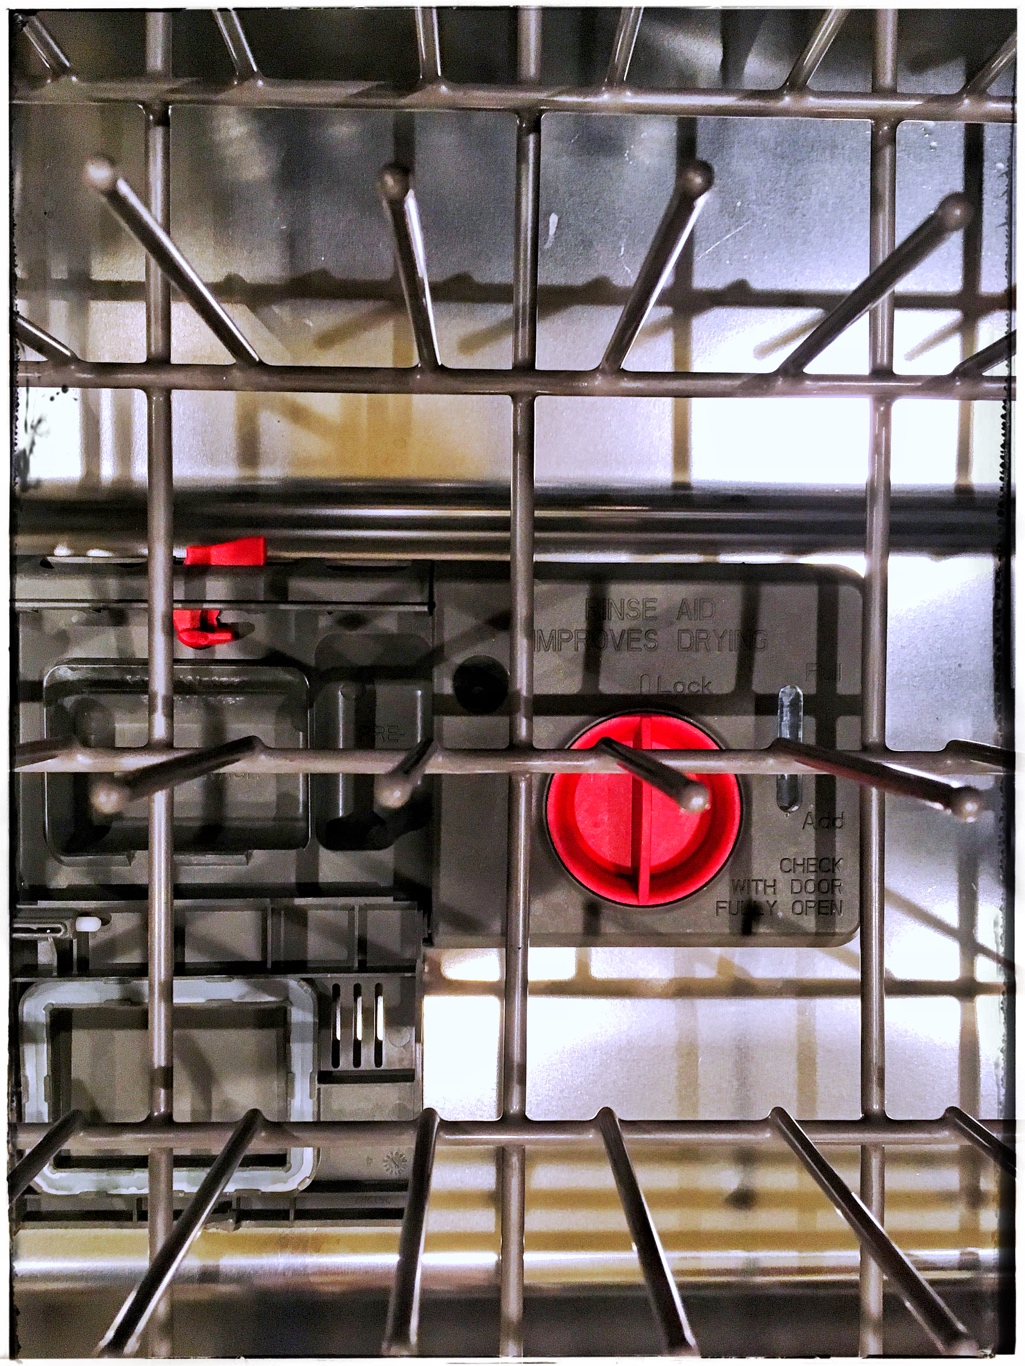 Dishwasher Abstract